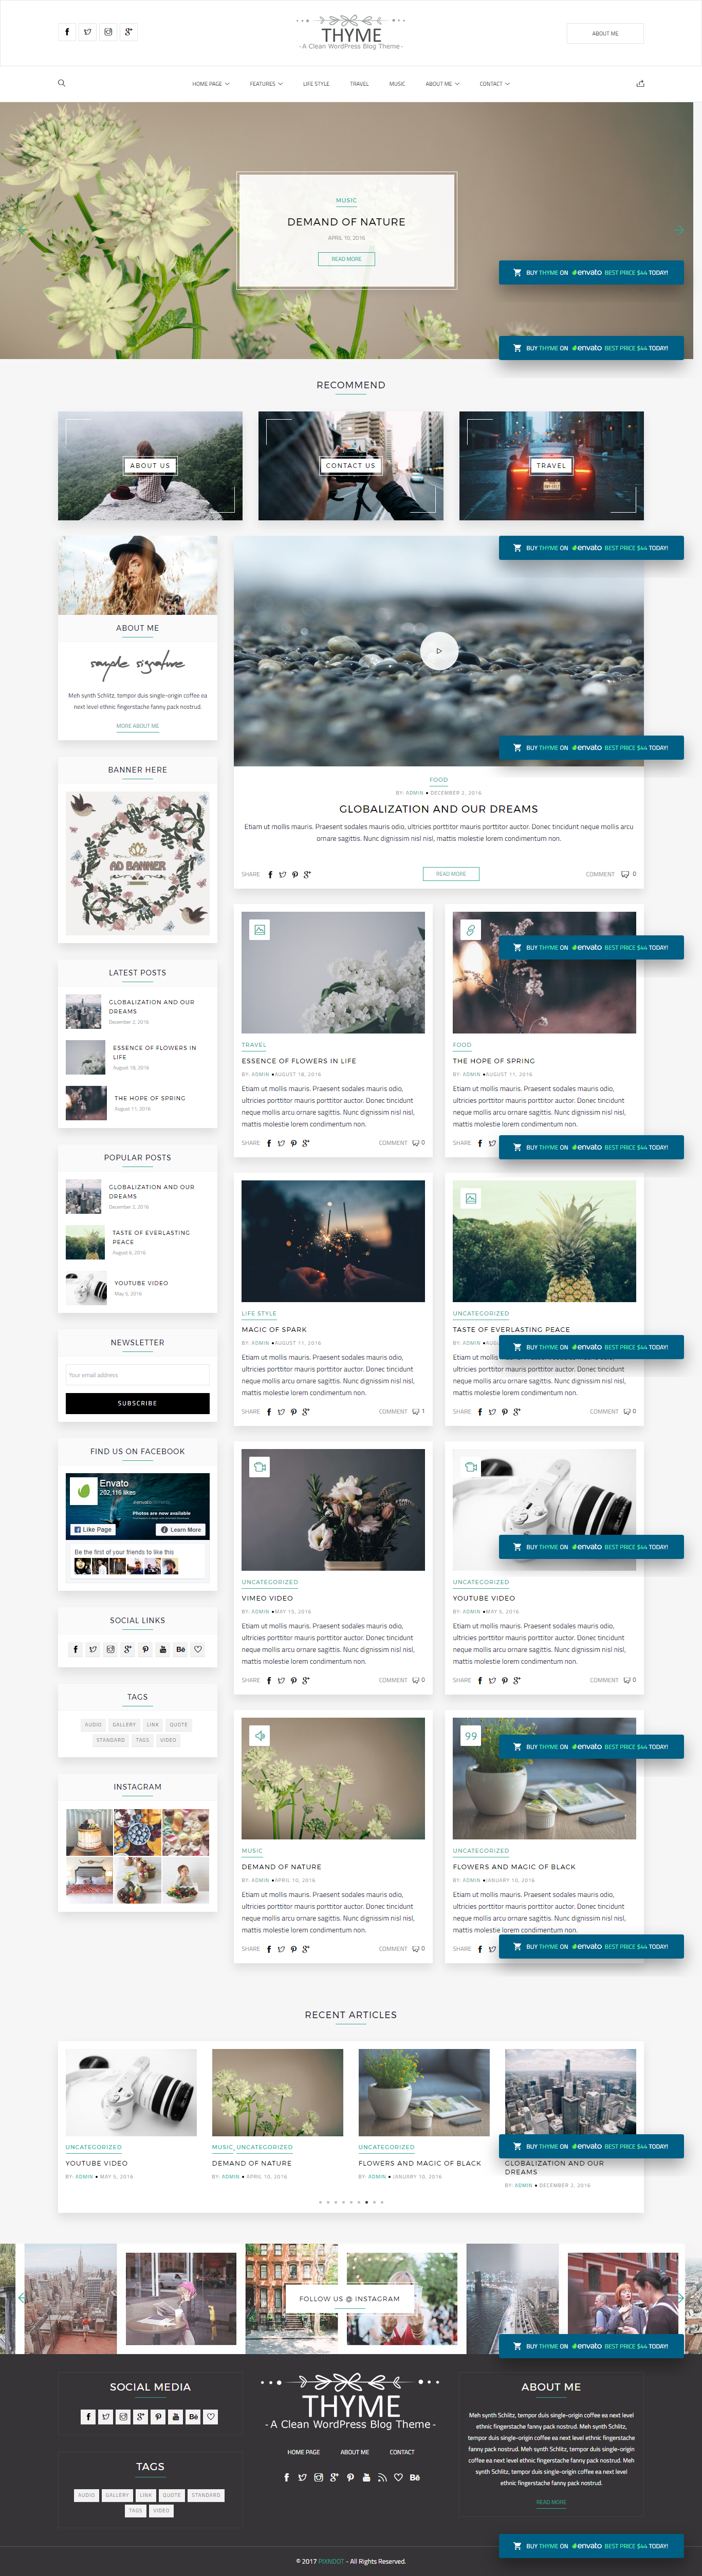 Thyme A Responsive Wordpress Blog Theme Wordpress Blog Themes